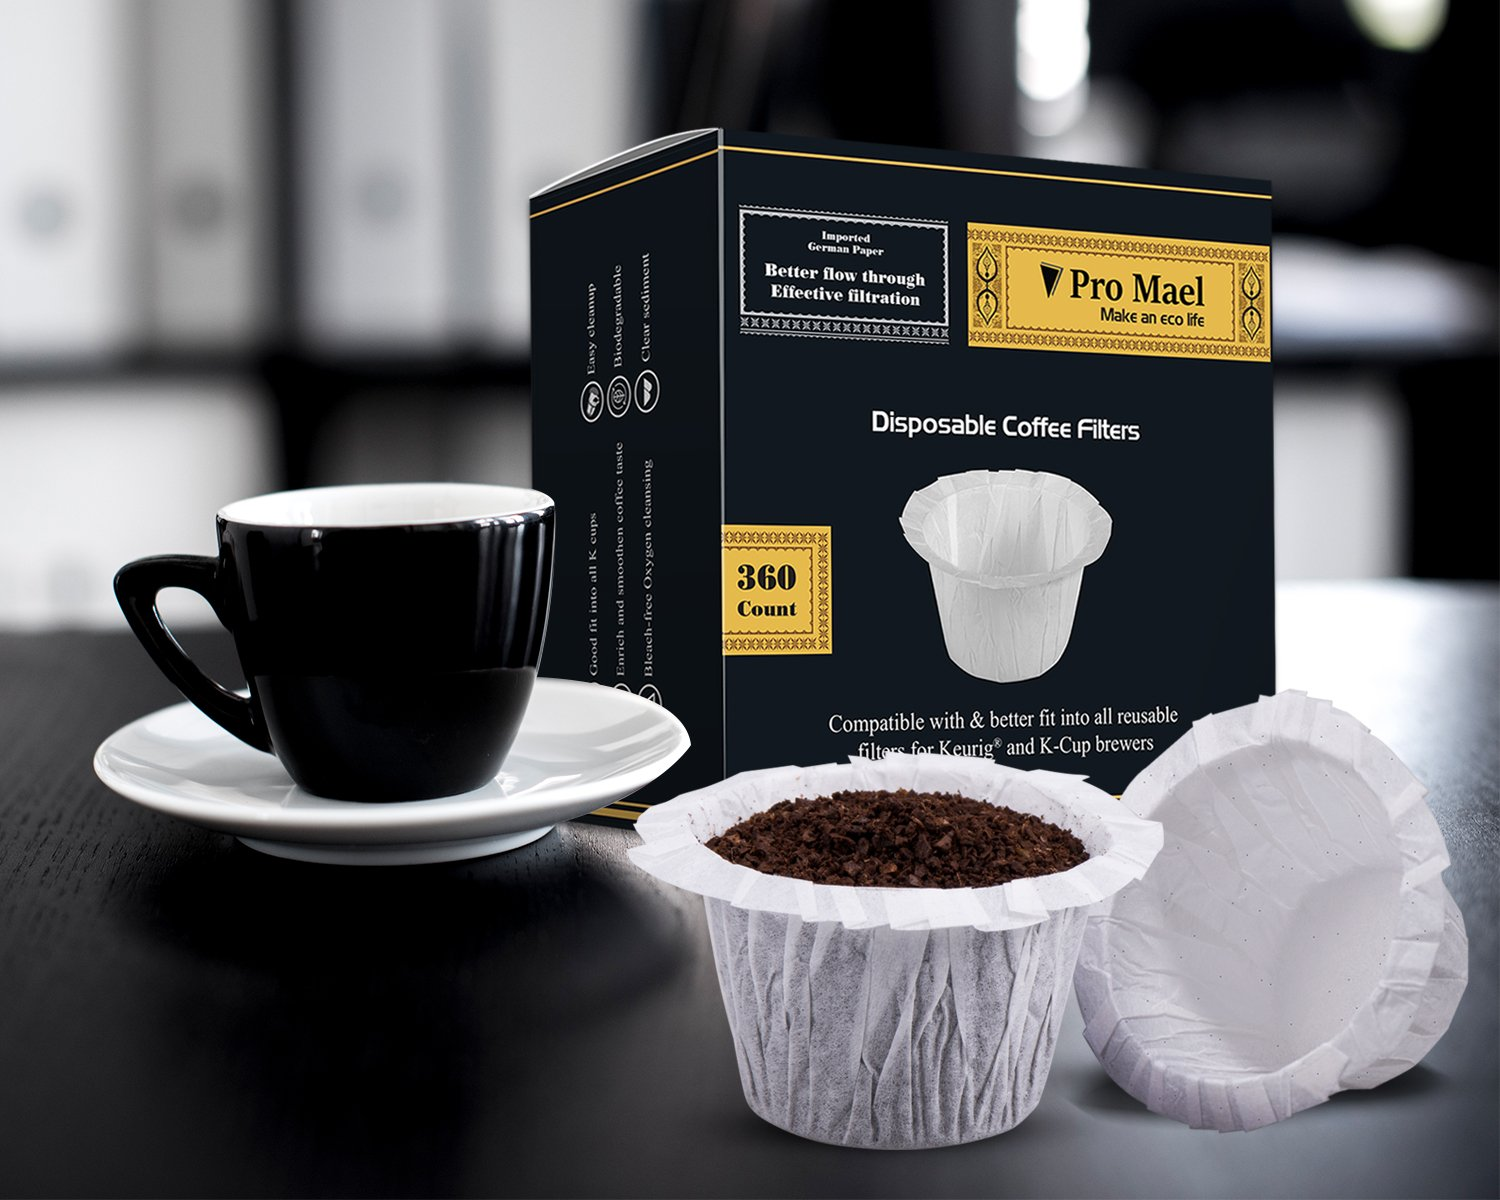 Disposable Coffee Filters 4 Pack 1440 Counts Coffee Filter Paper for Keurig Brewers Single Serve 1.0 and 2.0 Use with All Brands Reusable K Cup Filter by PRO MAEL (Image #6)